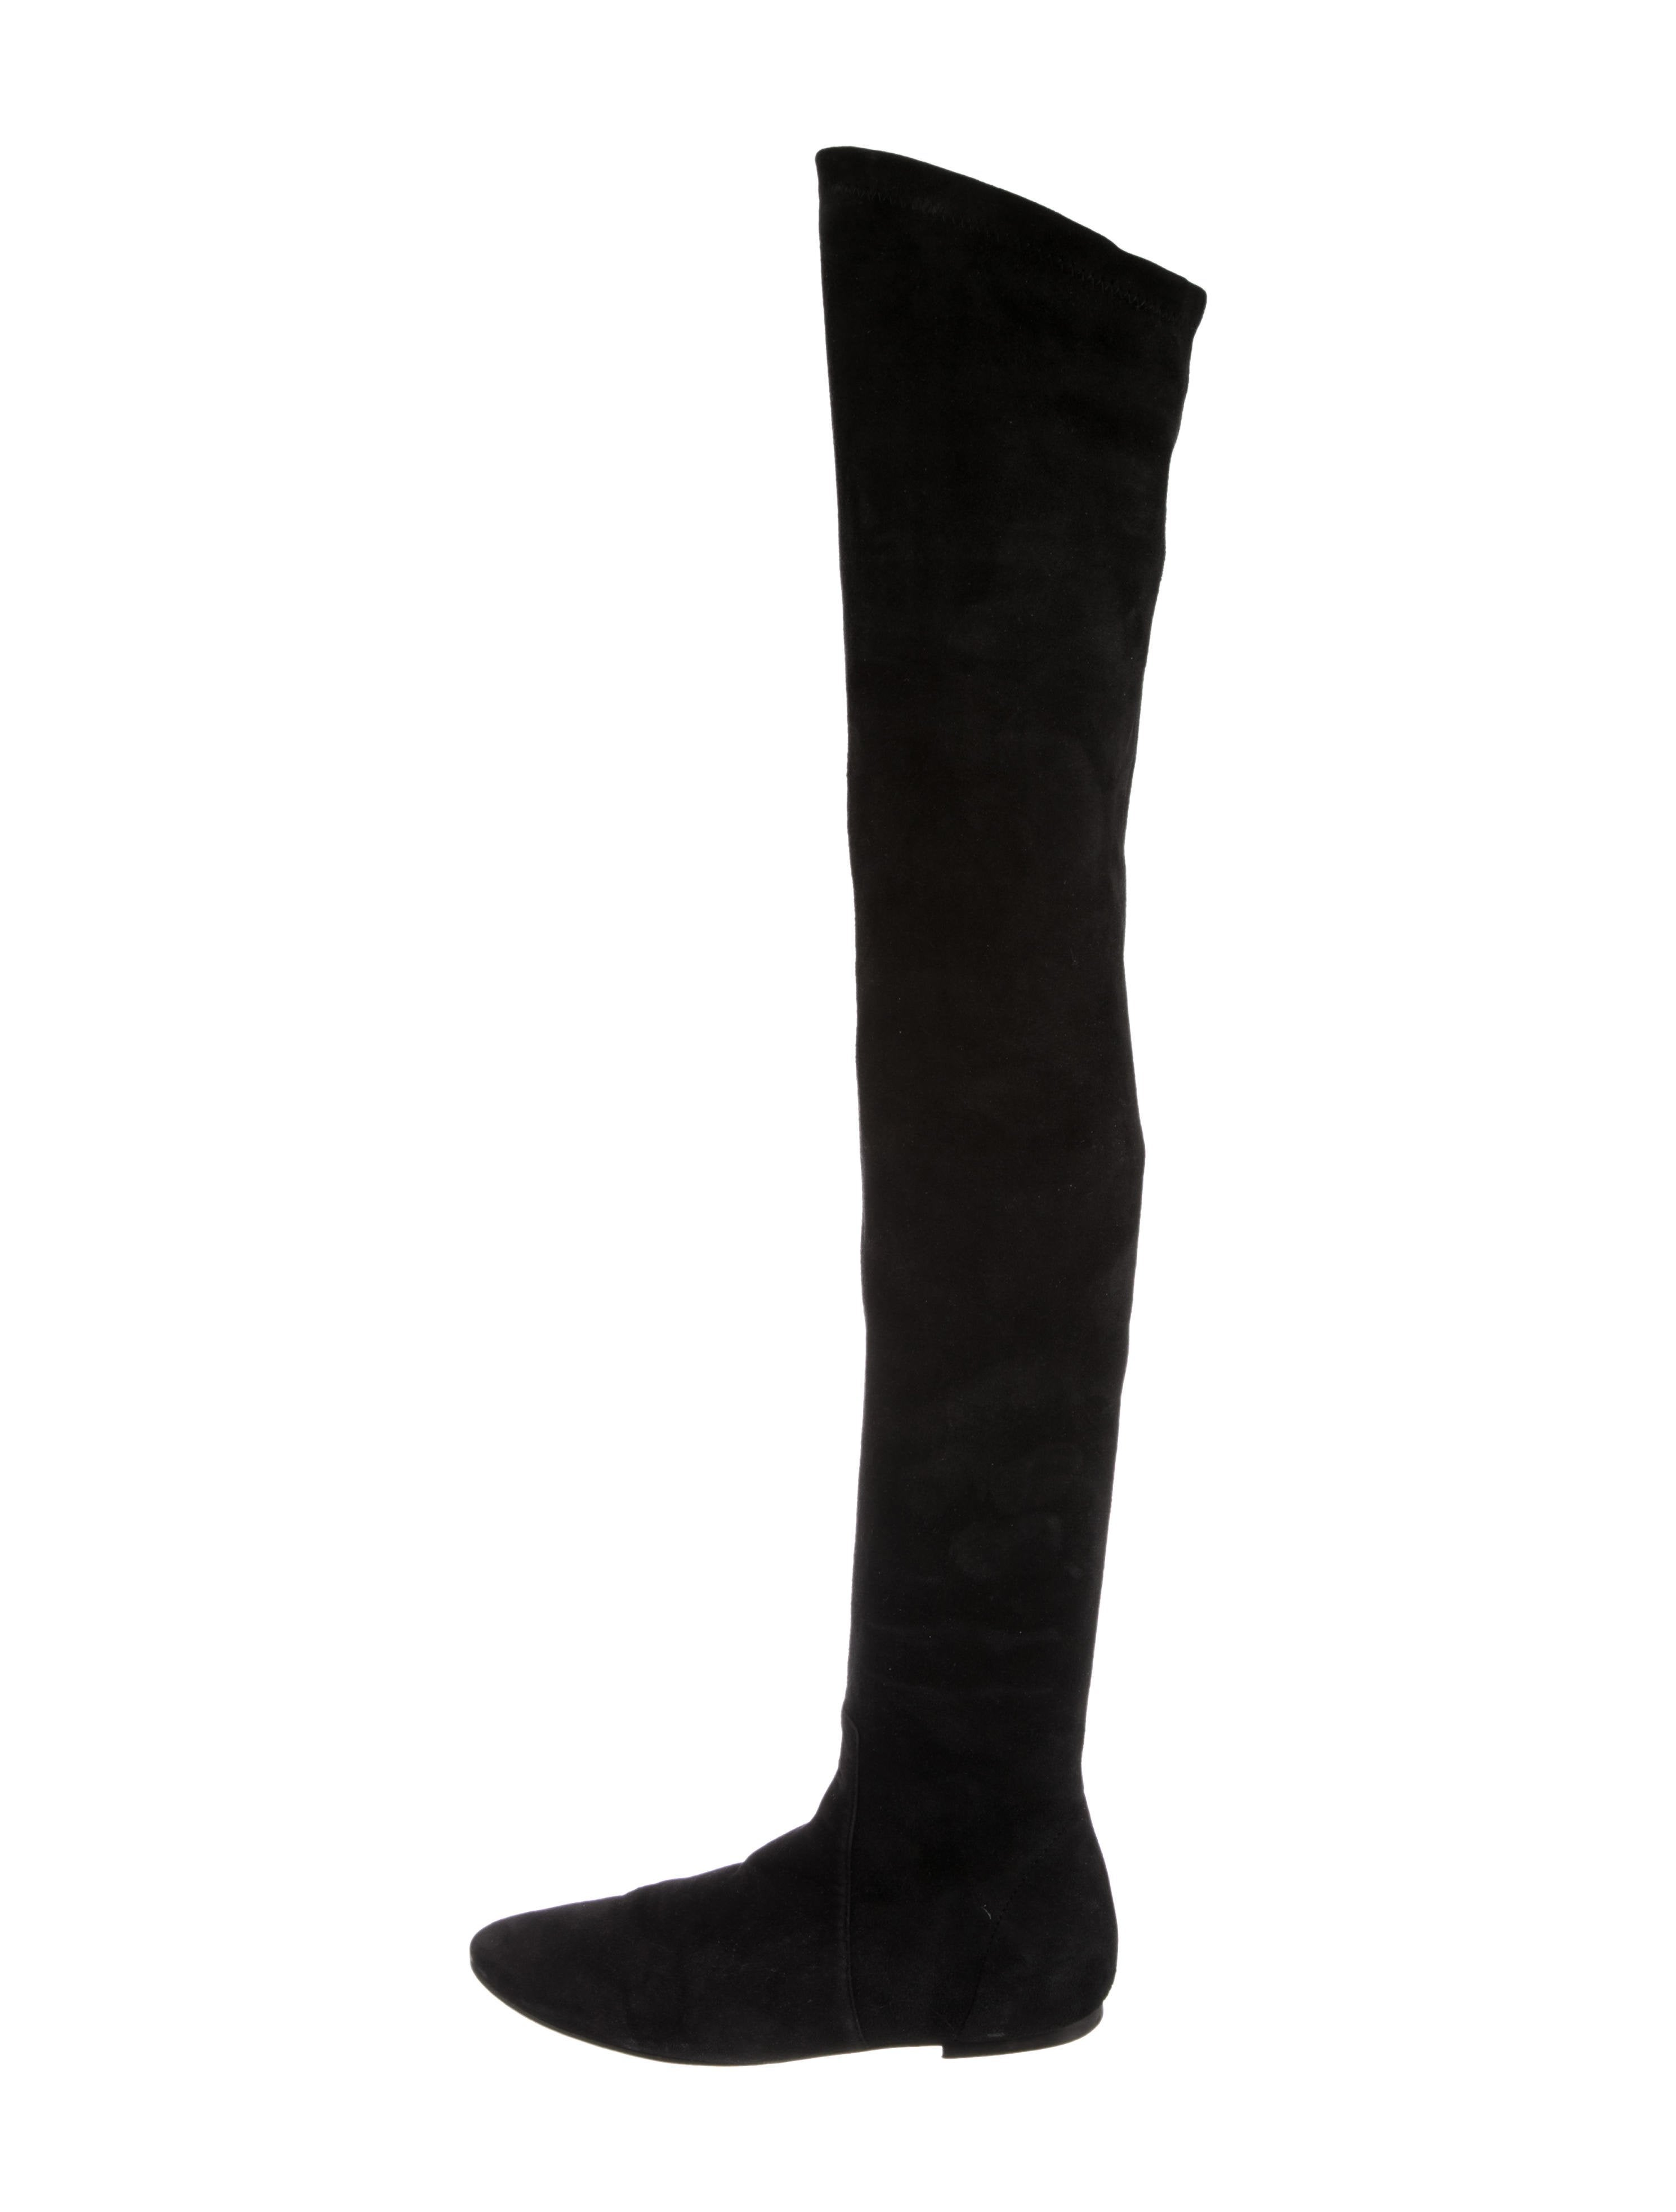 543924ff2fb Étoile Isabel Marant Brenna Over-The-Knee Boots - Shoes - WET54394 ...